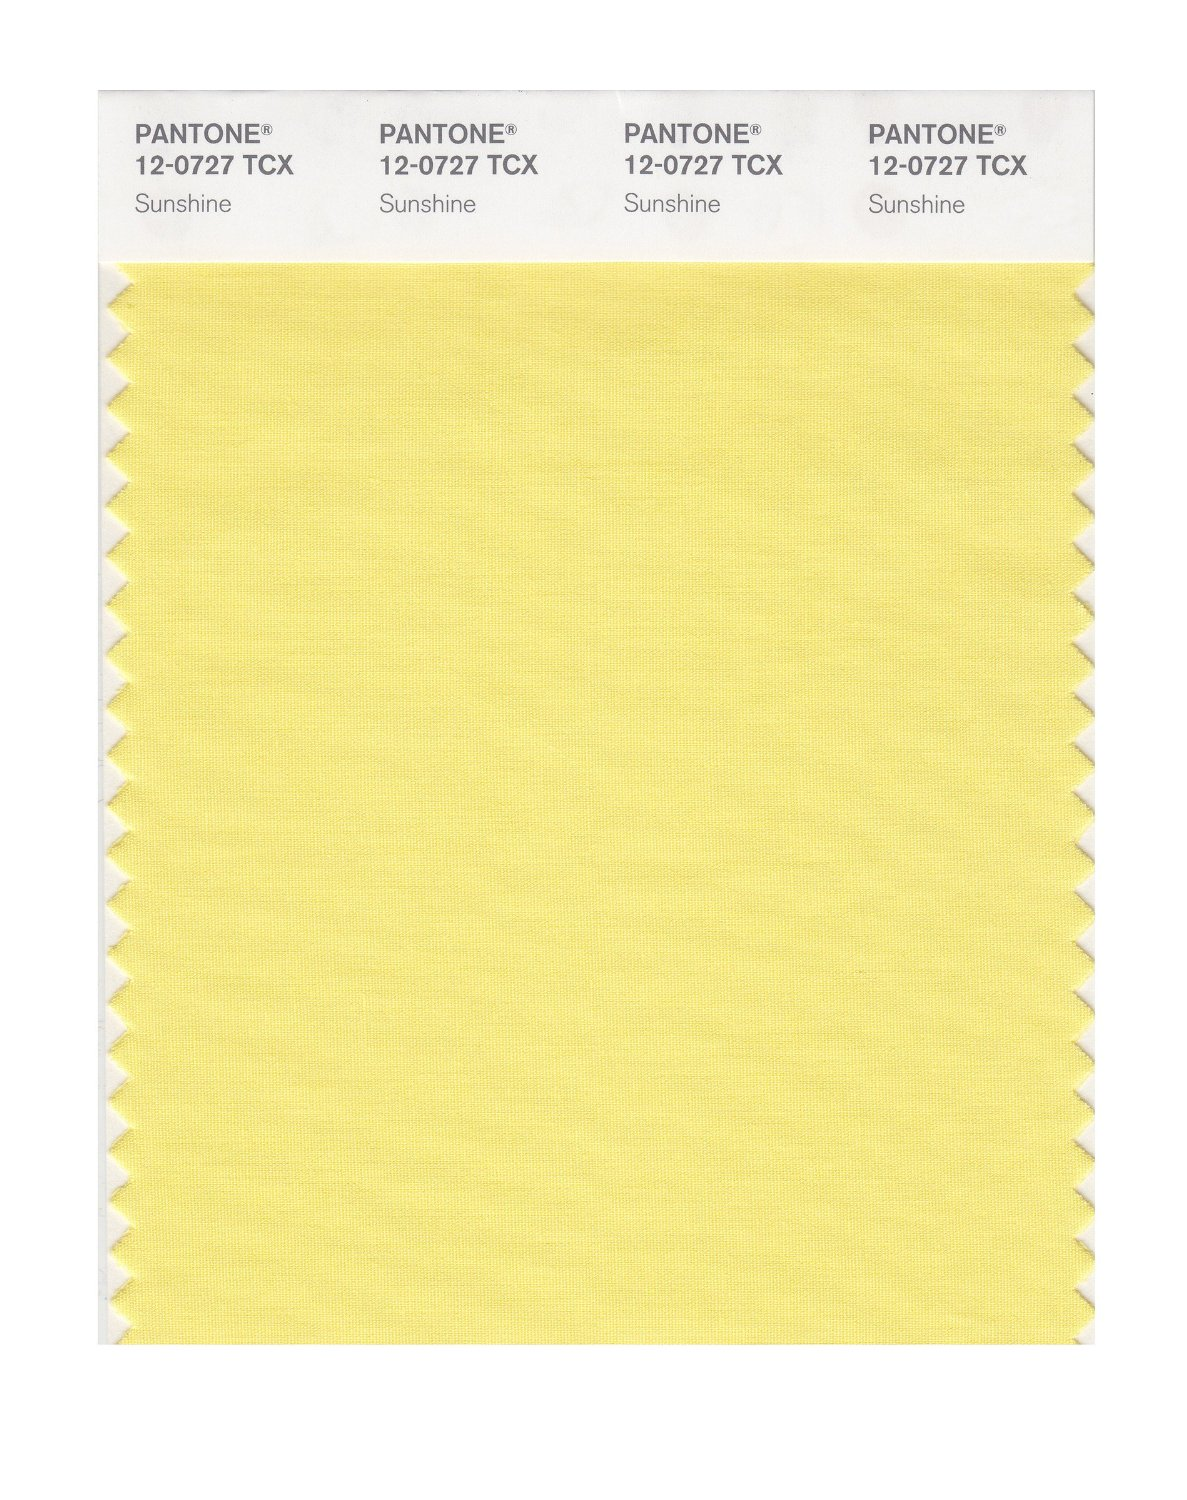 Pantone Smart Swatch 12-0727 Sunshine